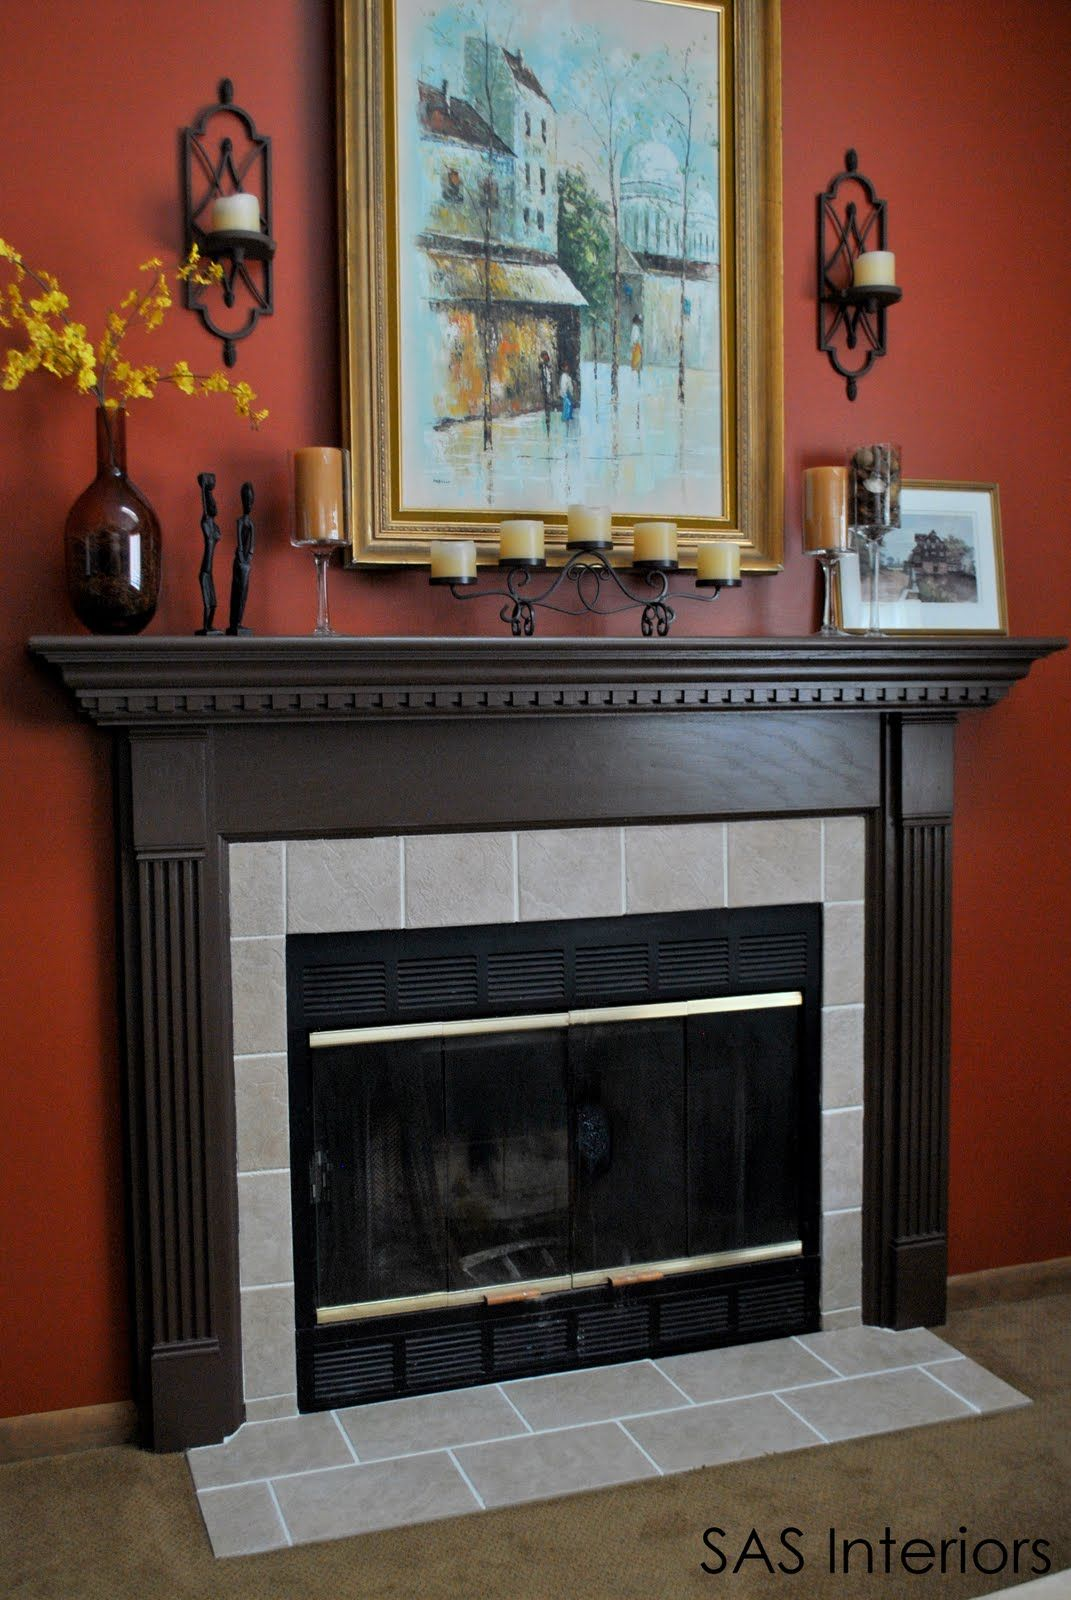 Diy fireplace surround transformation replacing out of for Dark fireplace mantel